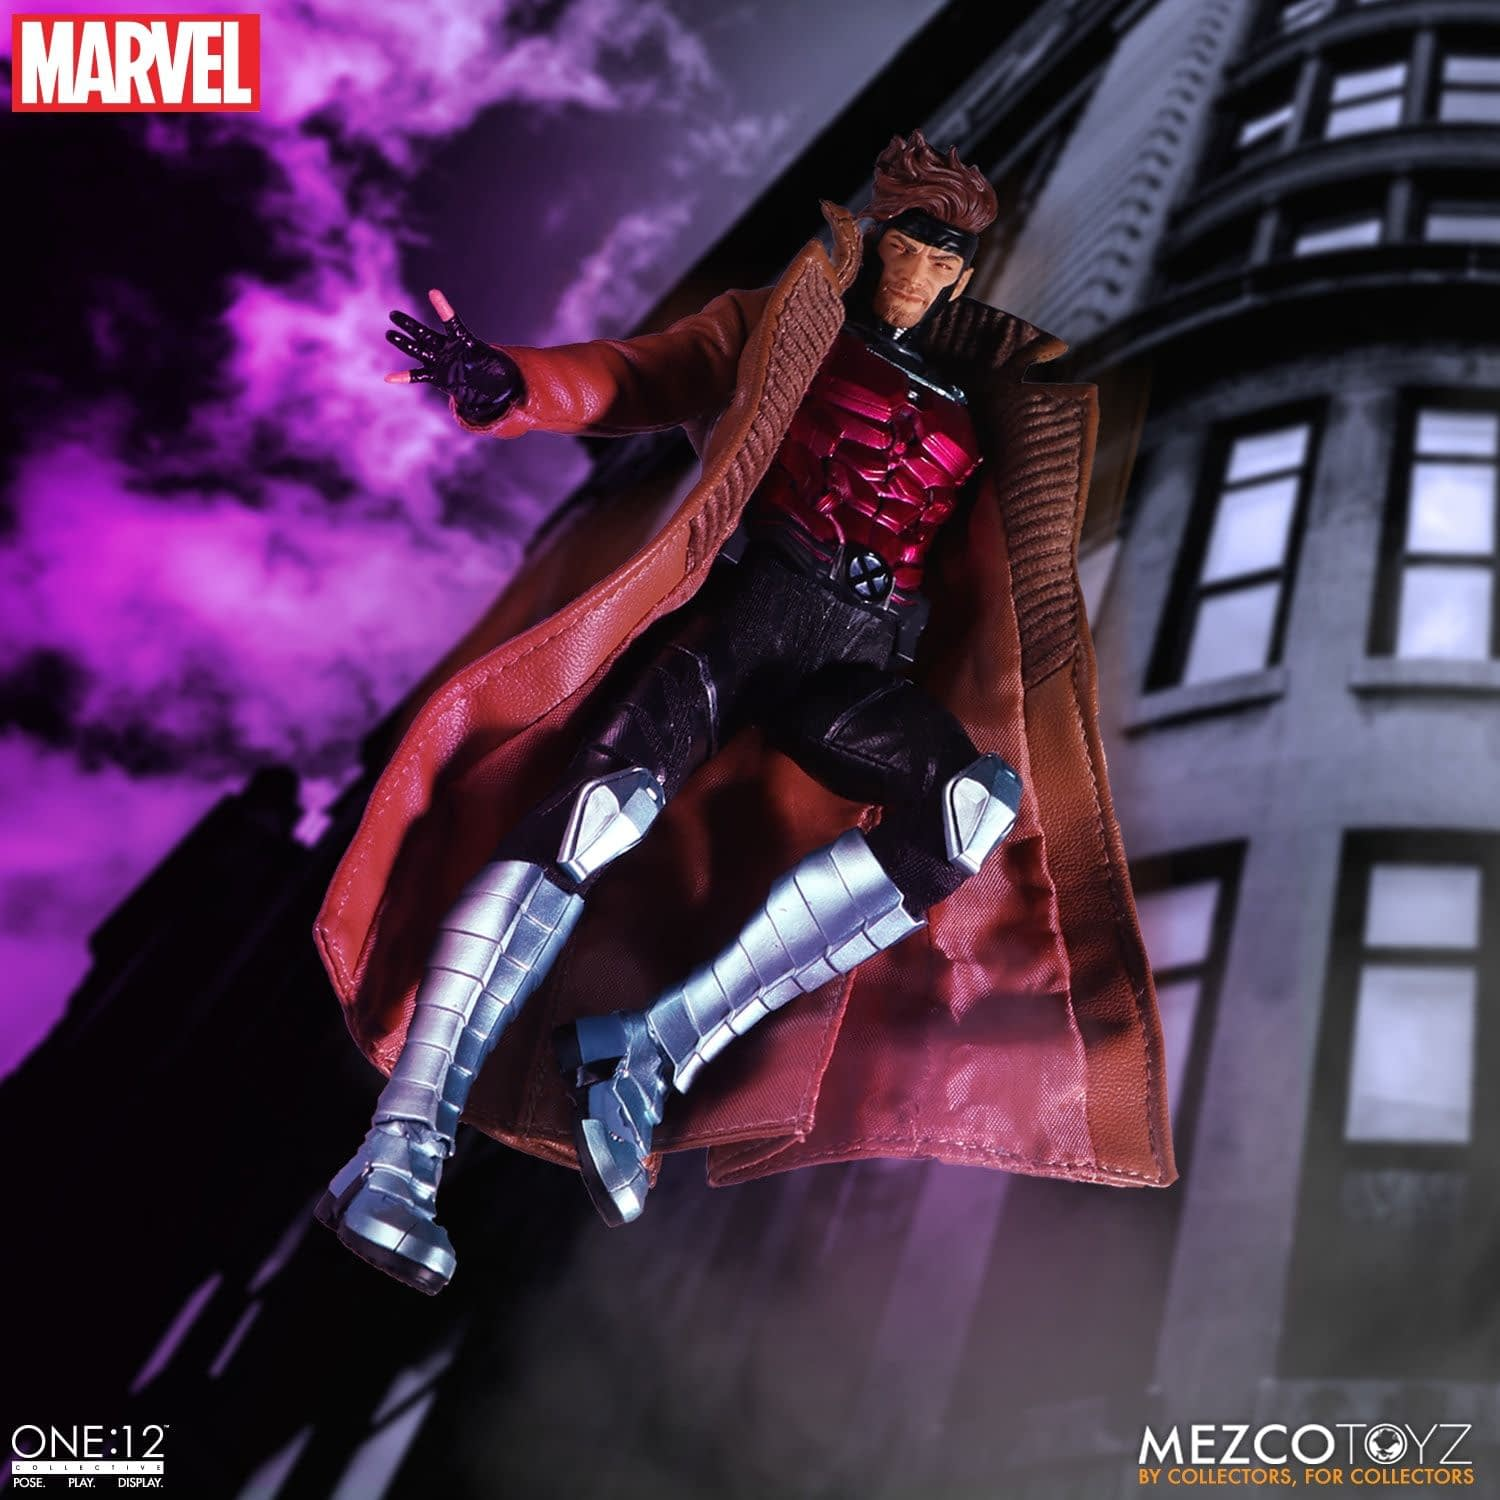 Gambit Shows His Royal Flush in New One:12 Mezco Figure